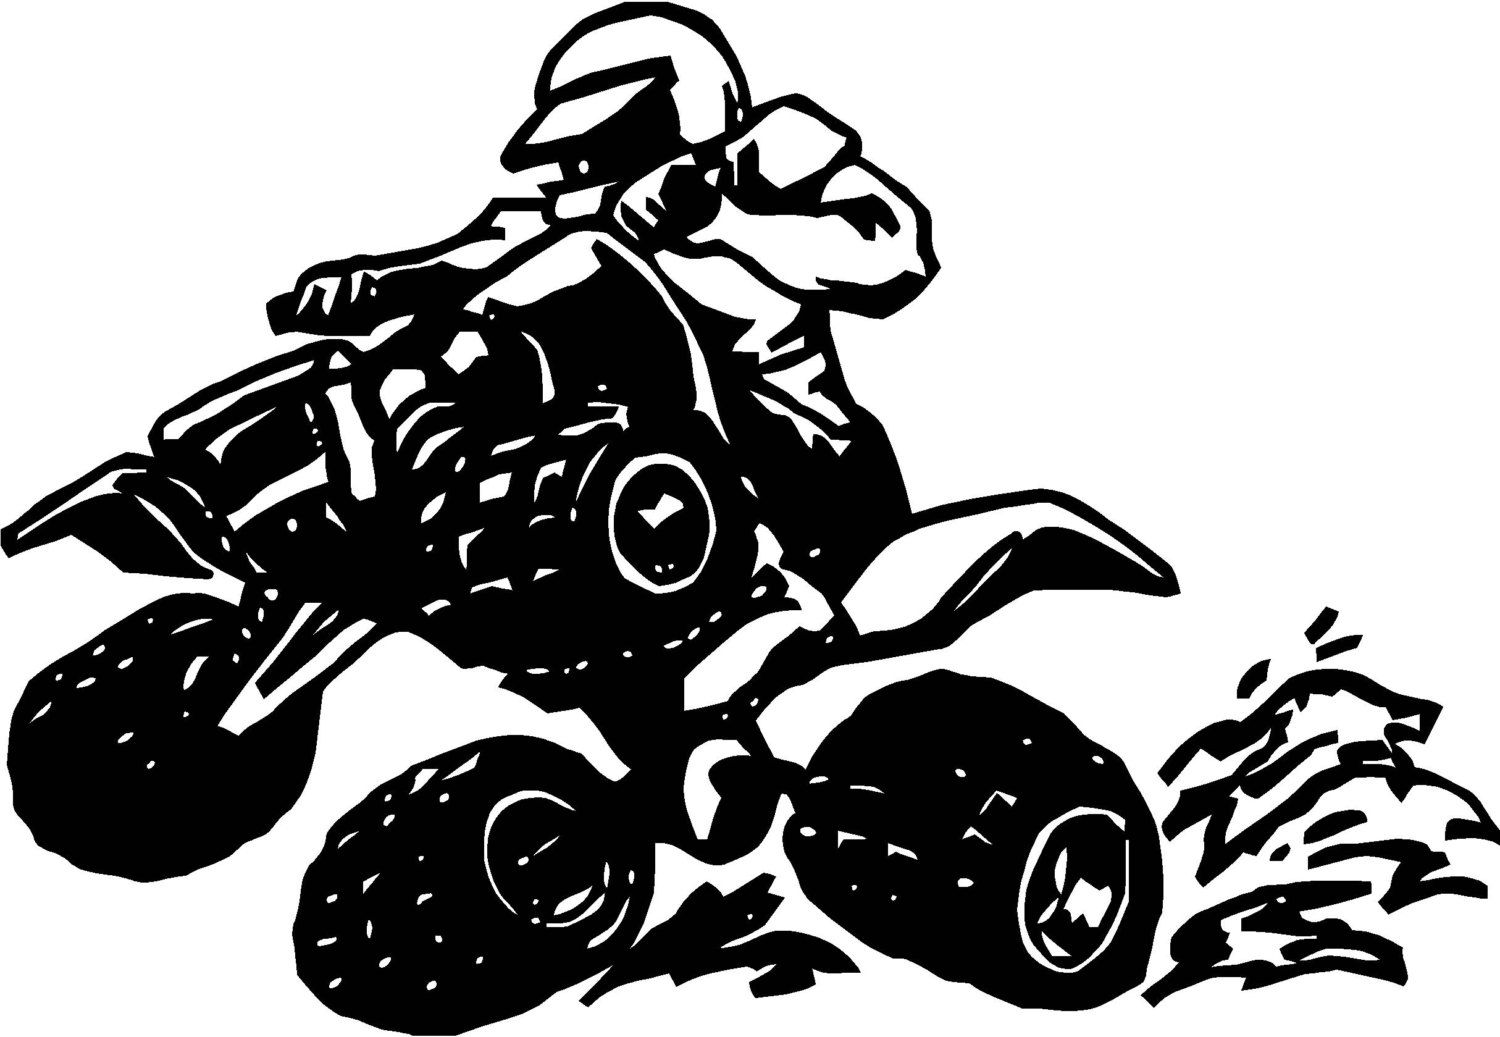 Atv Quad Bike Wall Decal Wall Art Sticker Black Outline